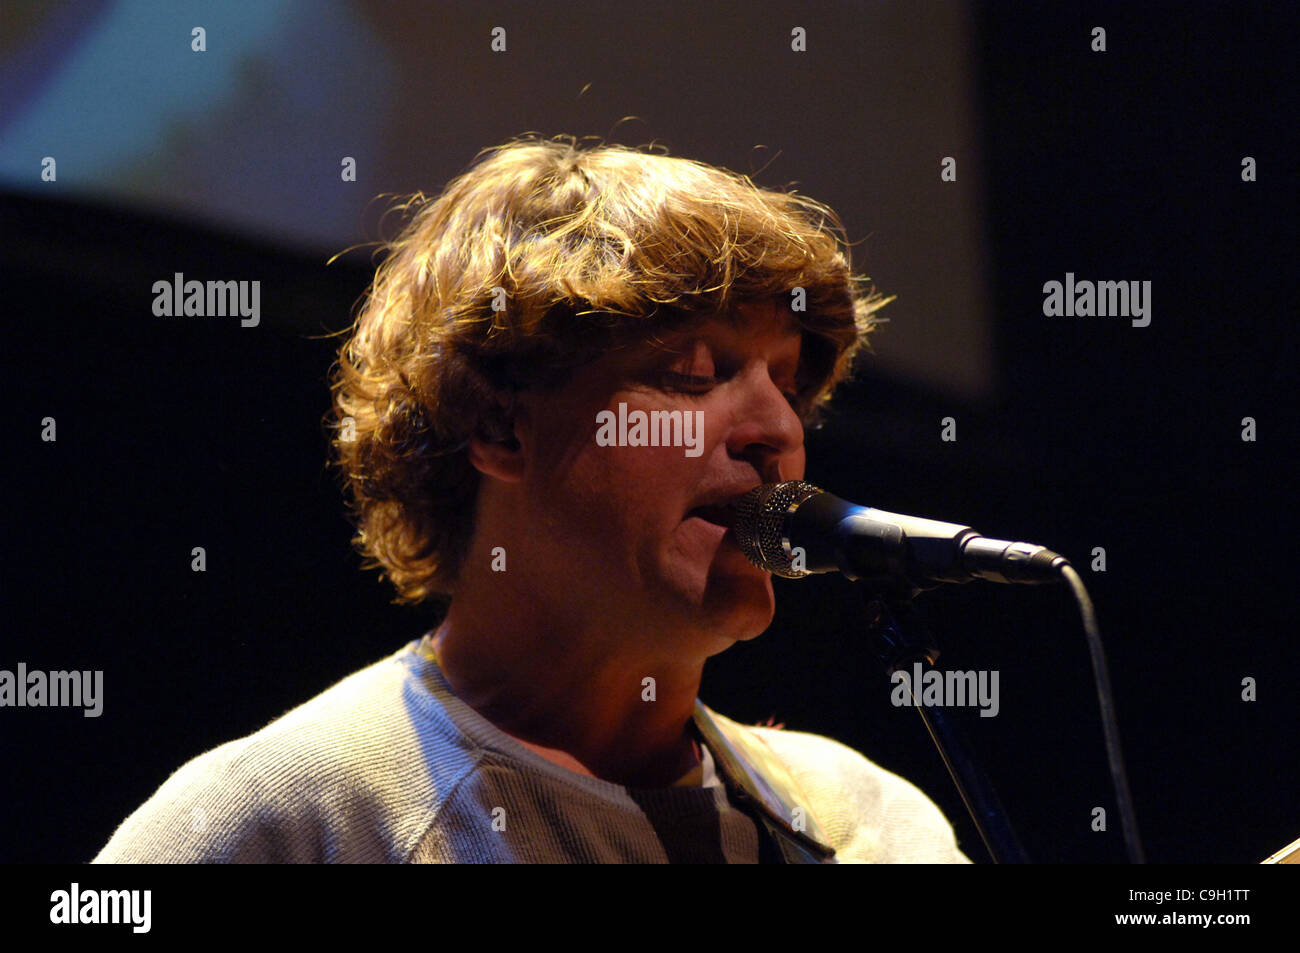 Keller Williams Stockfotos & Keller Williams Bilder - Alamy